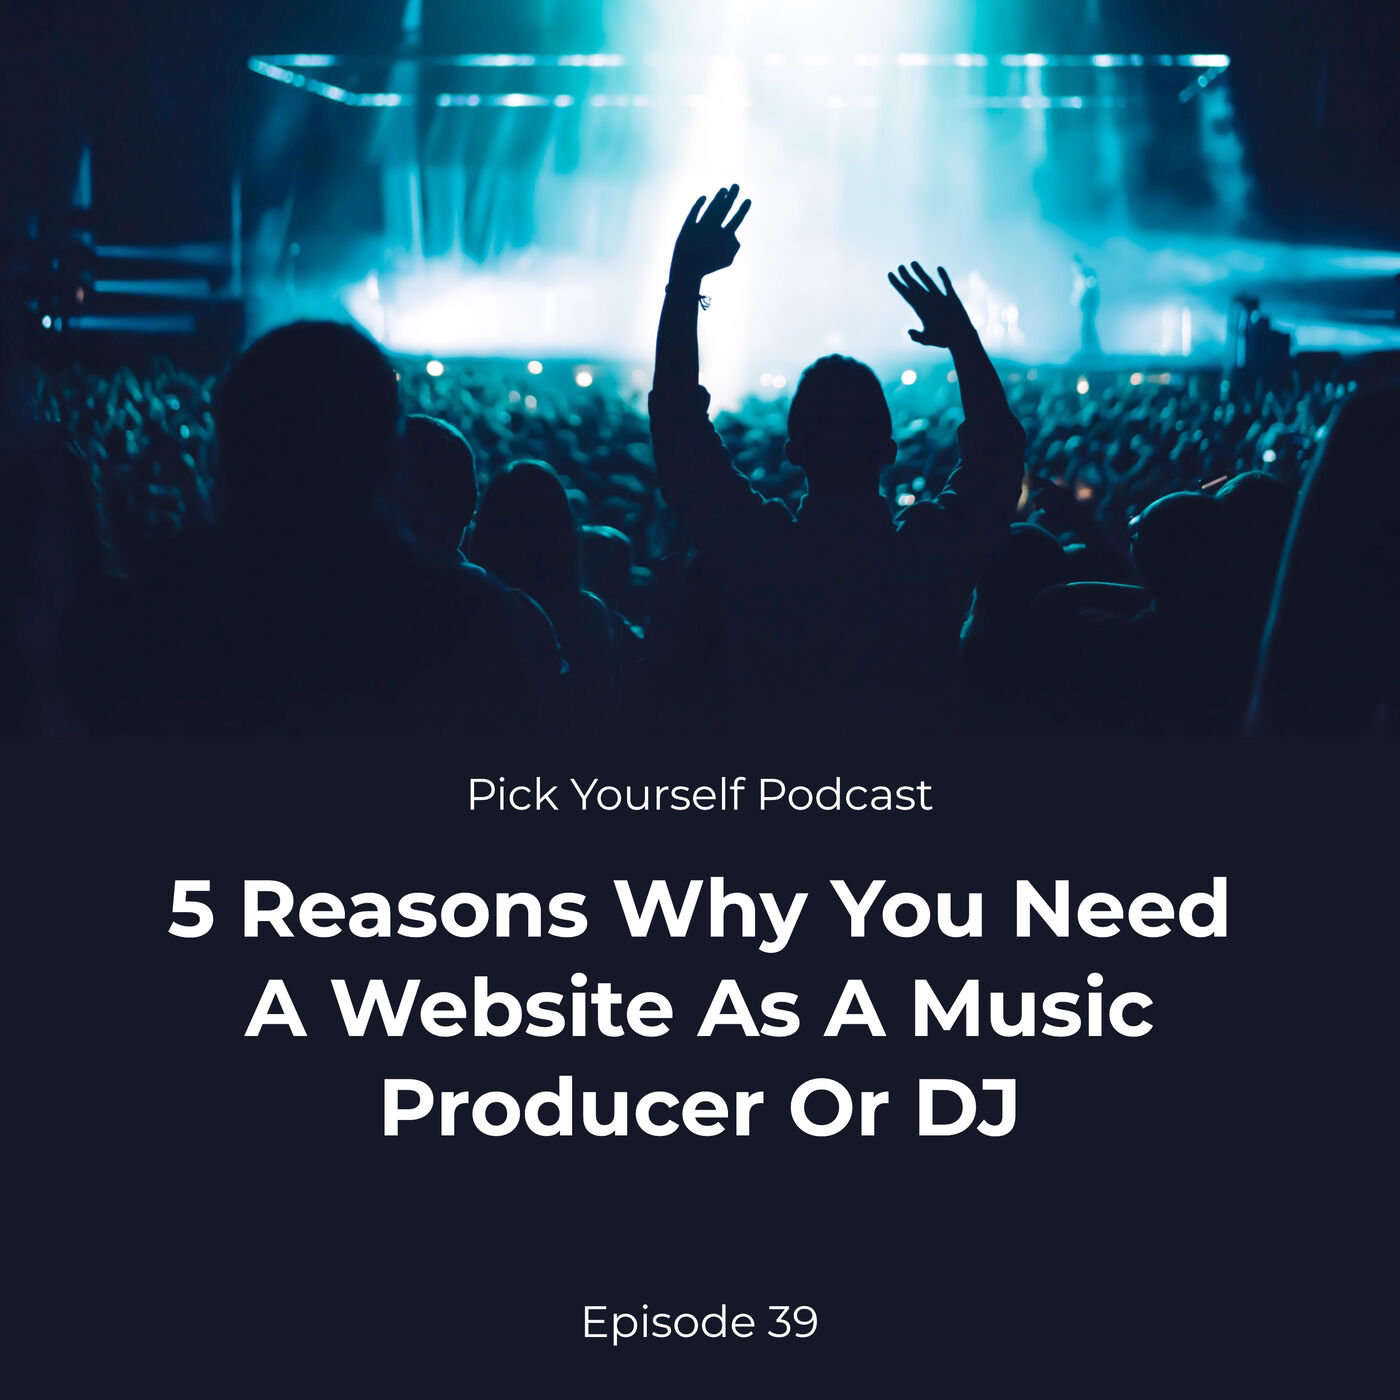 5 Reasons Why You Need A Website As A Music Producer Or DJ